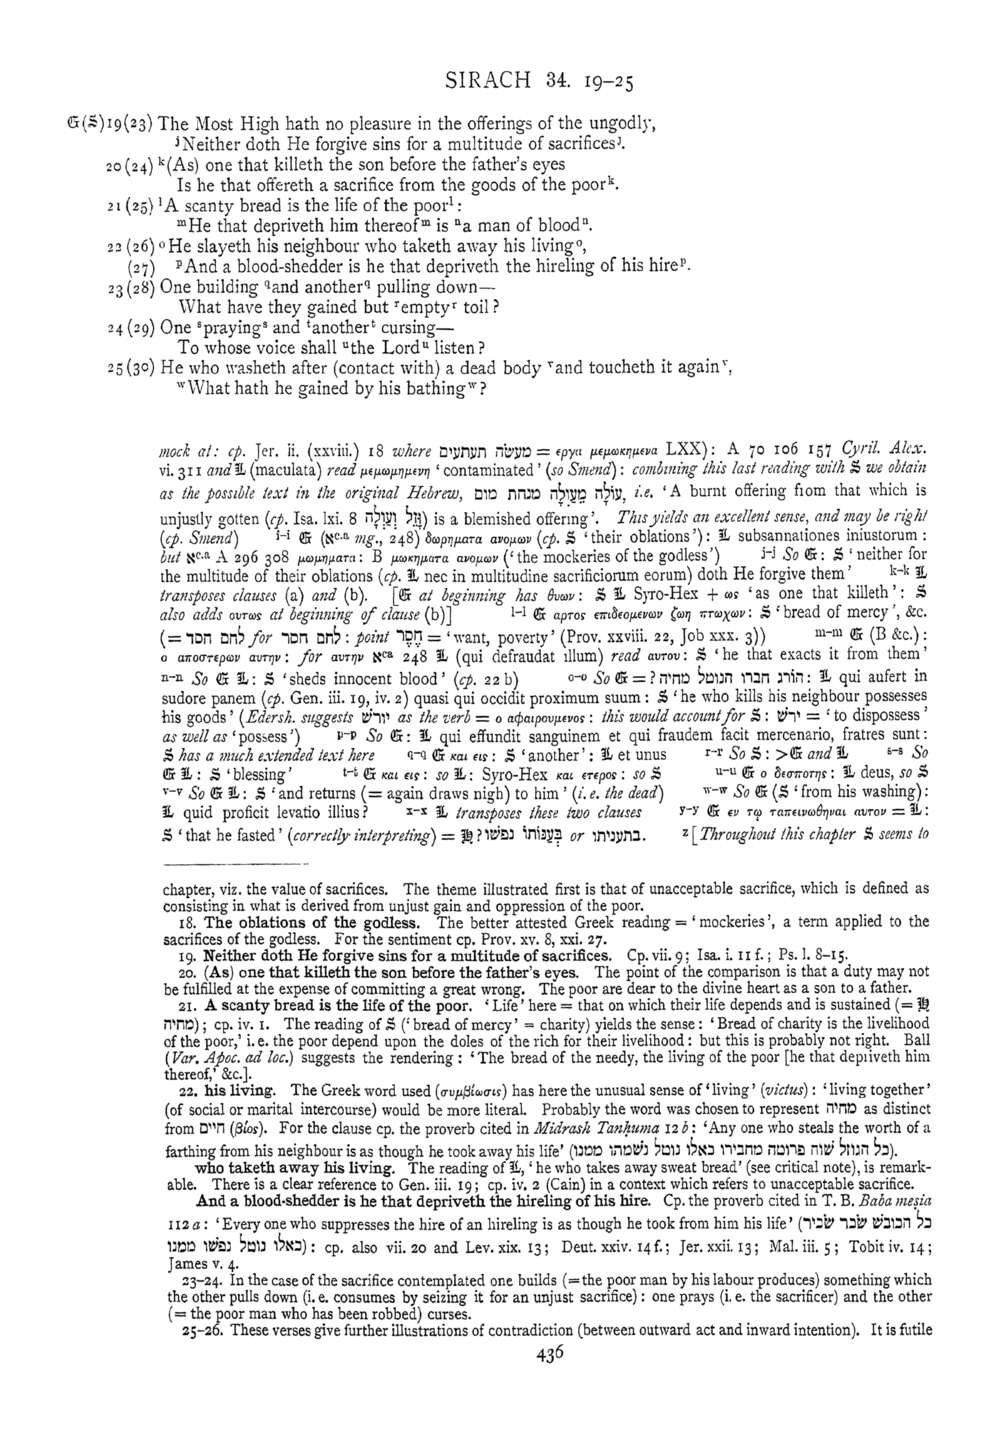 Image of page 436